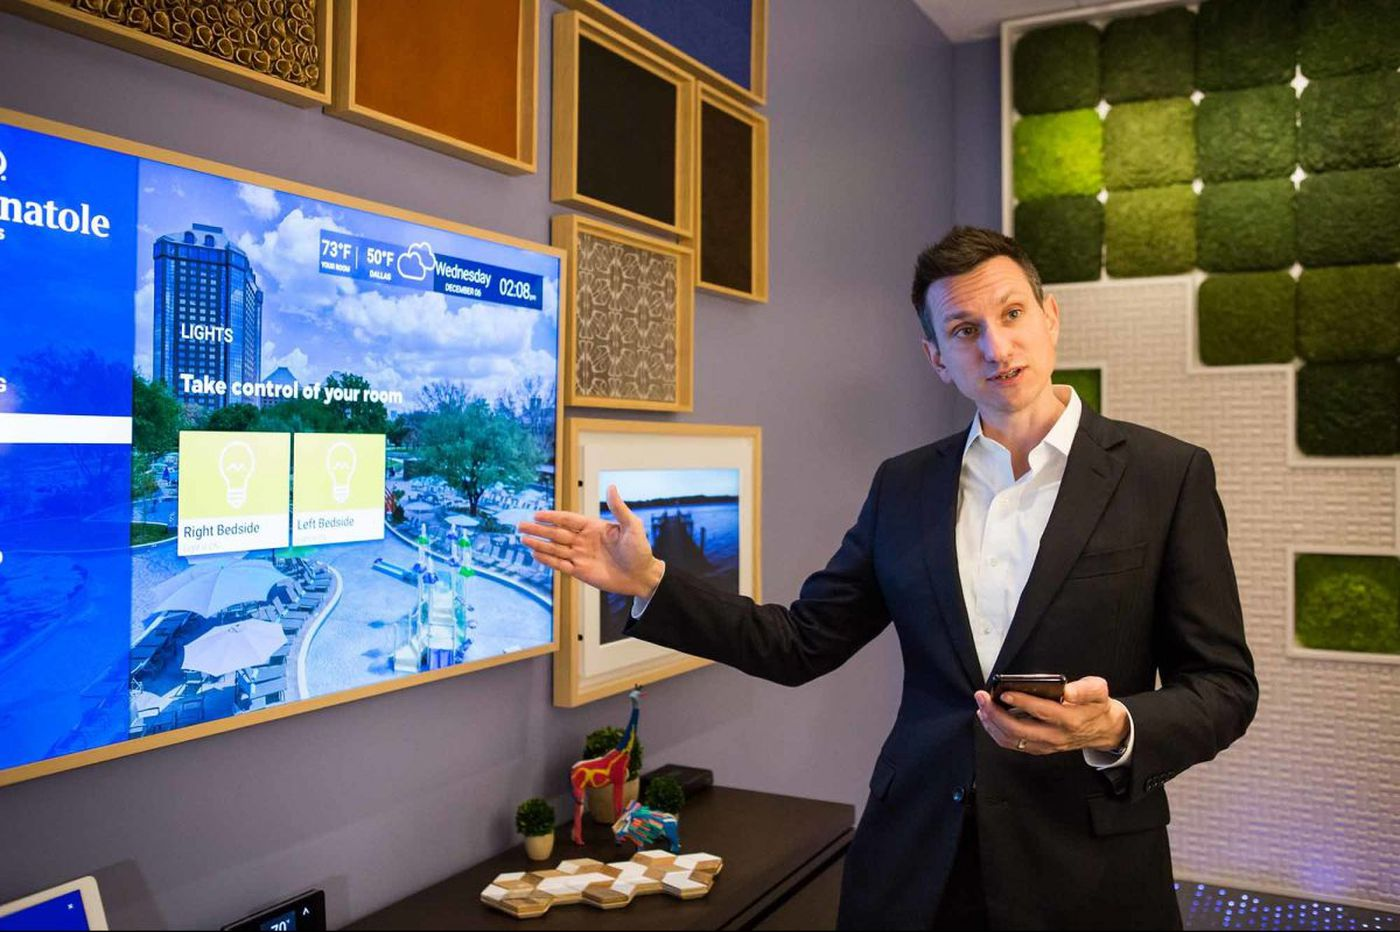 Hilton experiments with the future of hospitality at its Innovation Gallery